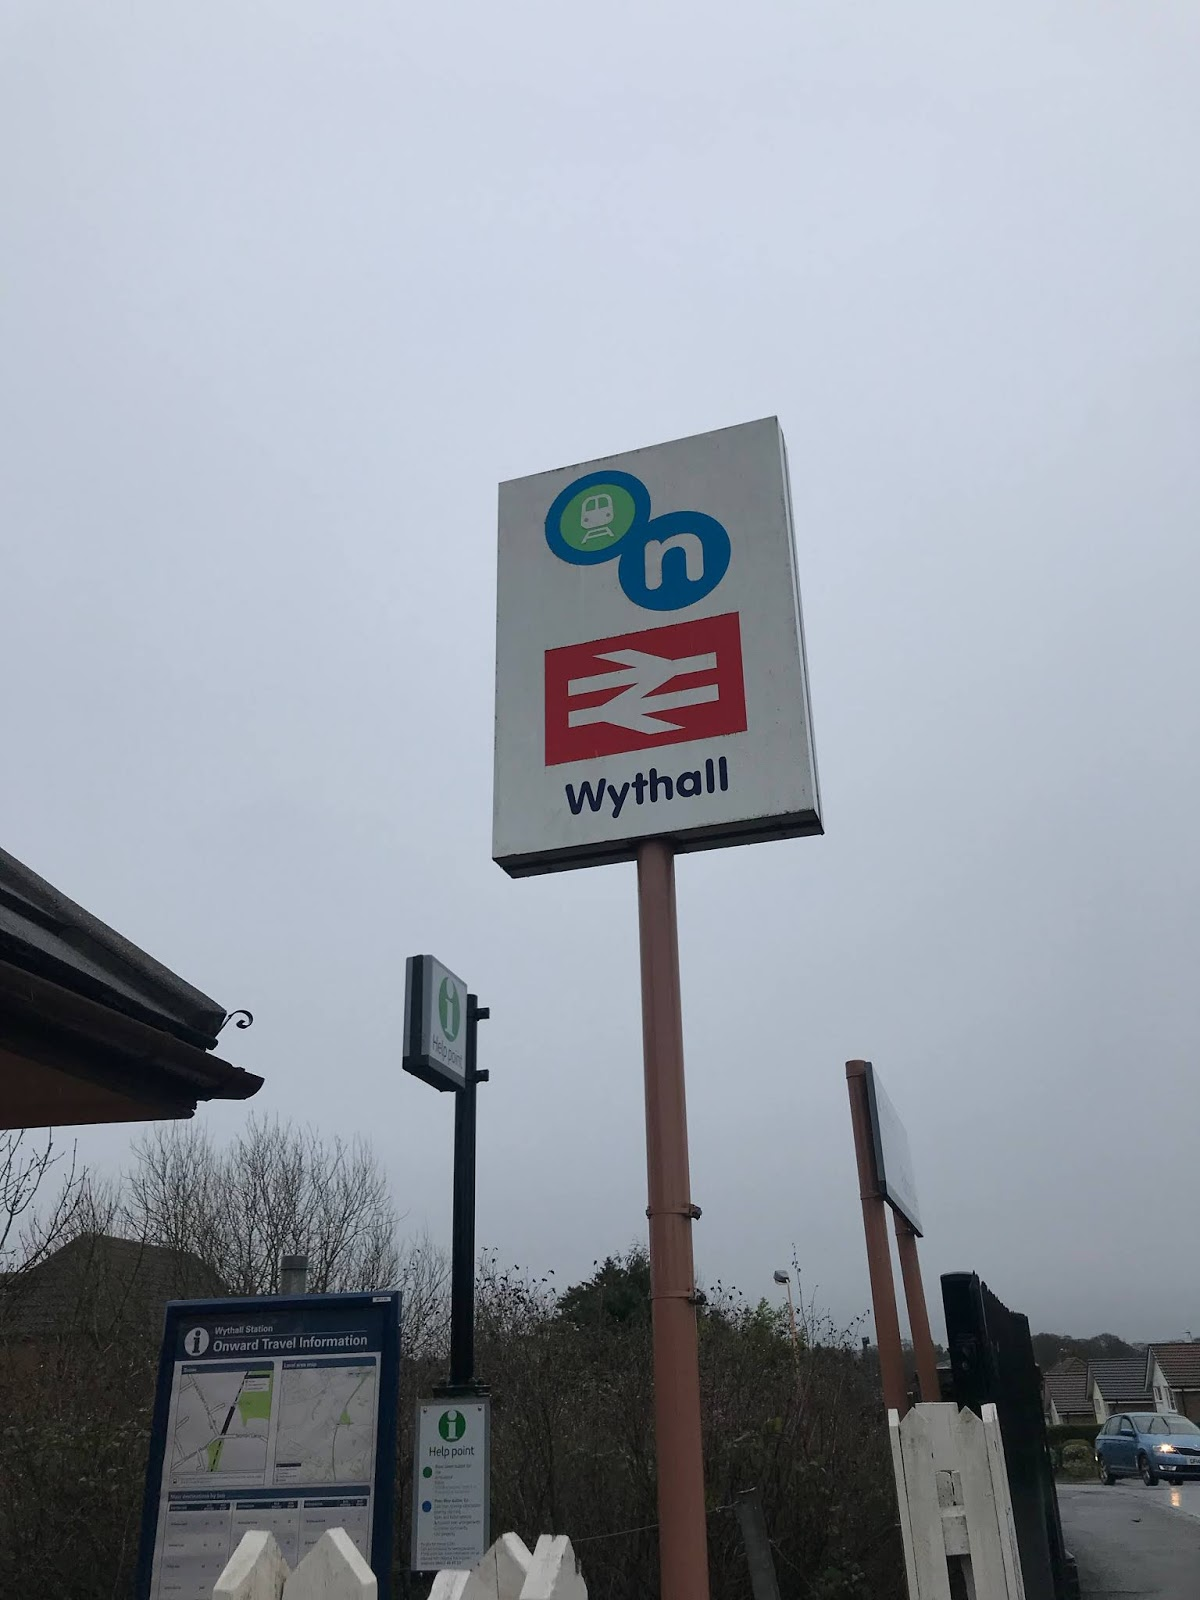 Wythall train station sign